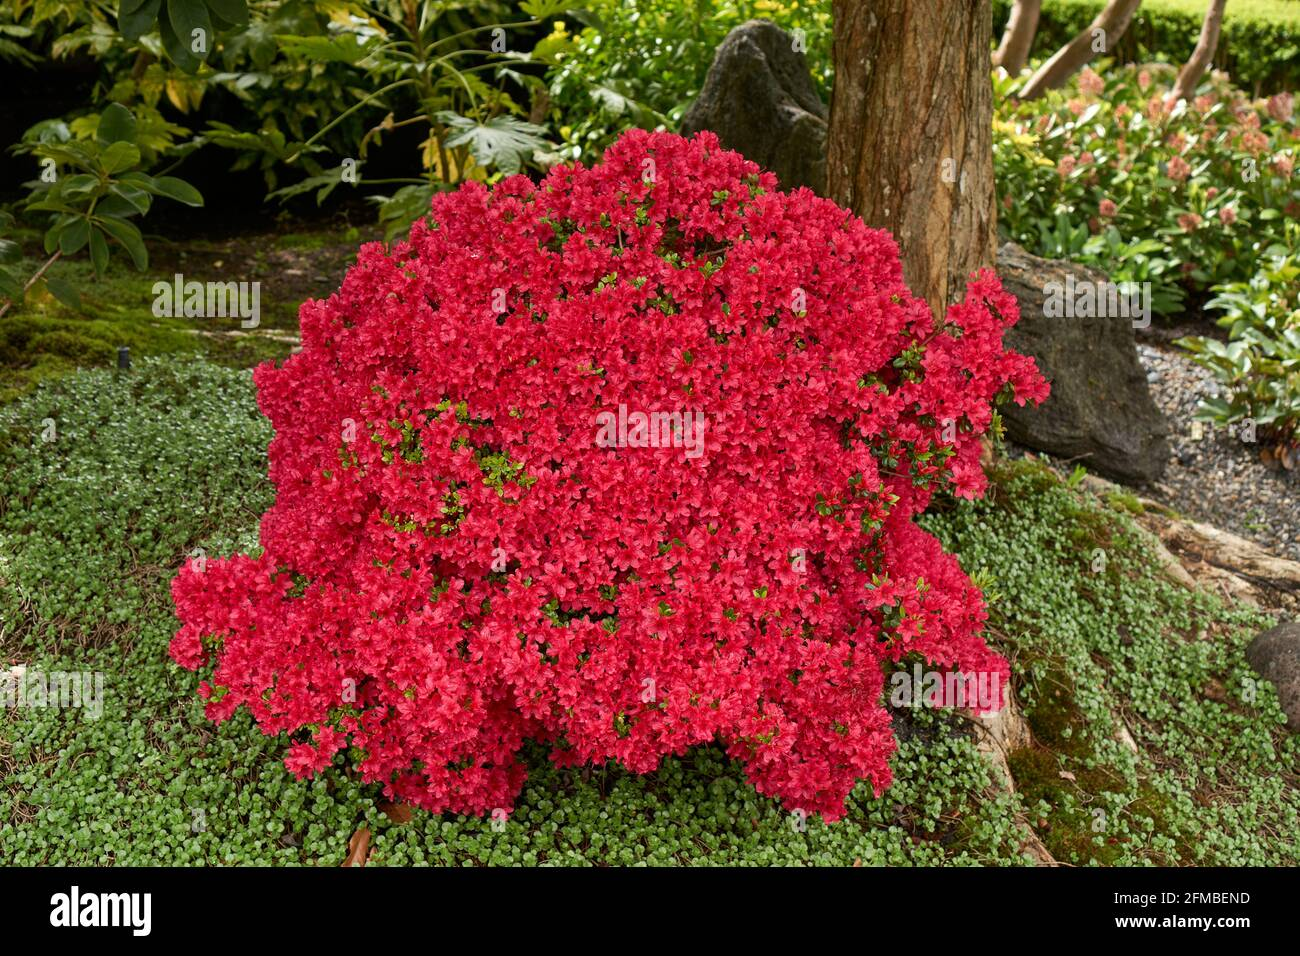 Red Japanese azalea Japanica bush flowering in spring in a garden, Vancouver, British Columbia, Canada Stock Photo